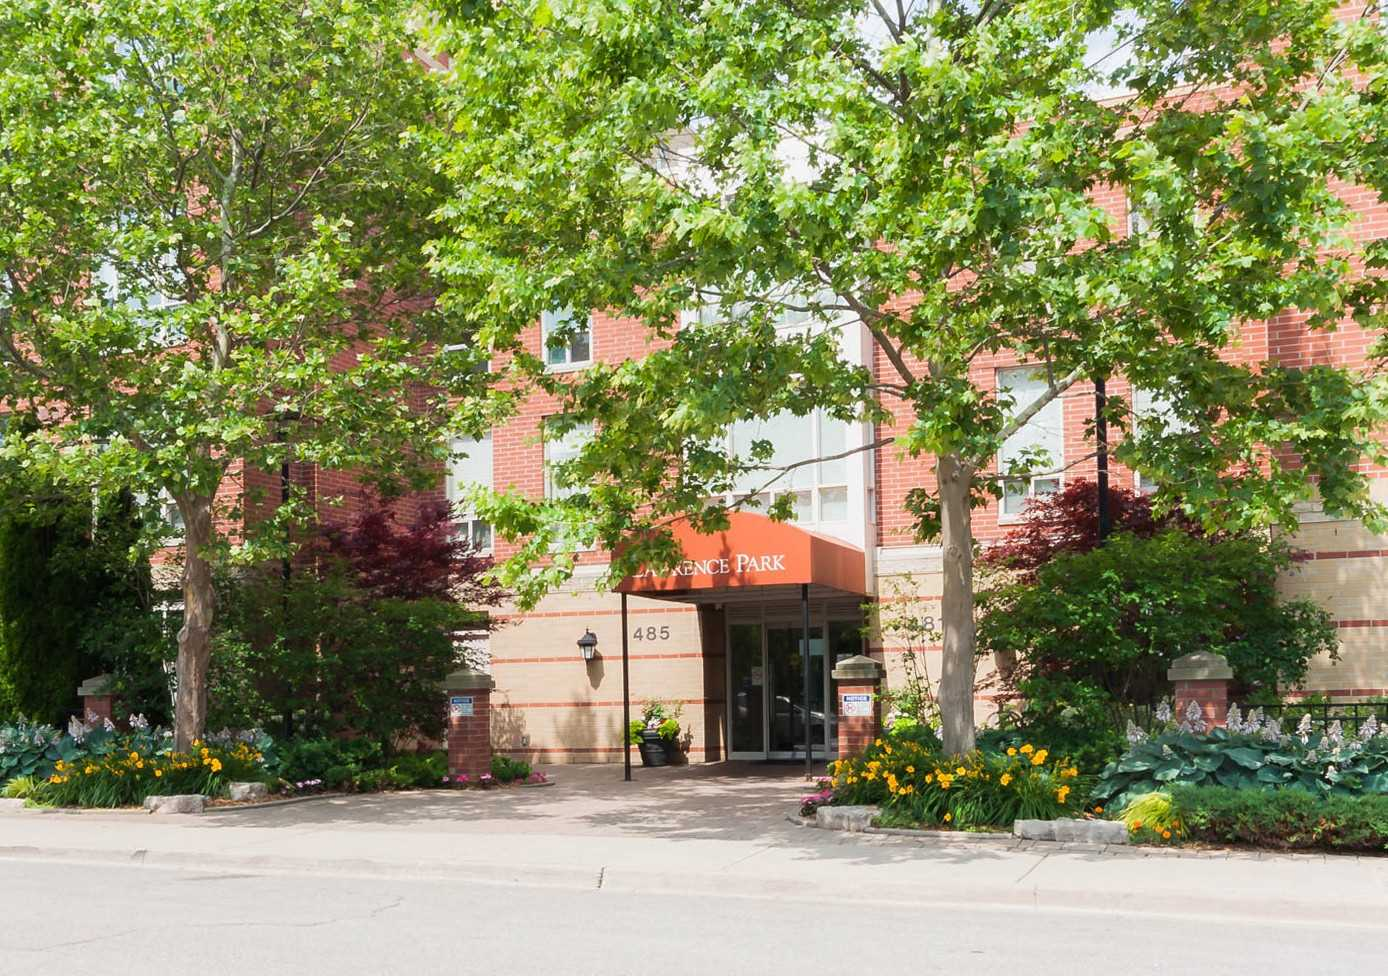 313 - 485 Rosewell Ave, Toronto, M4R2B6